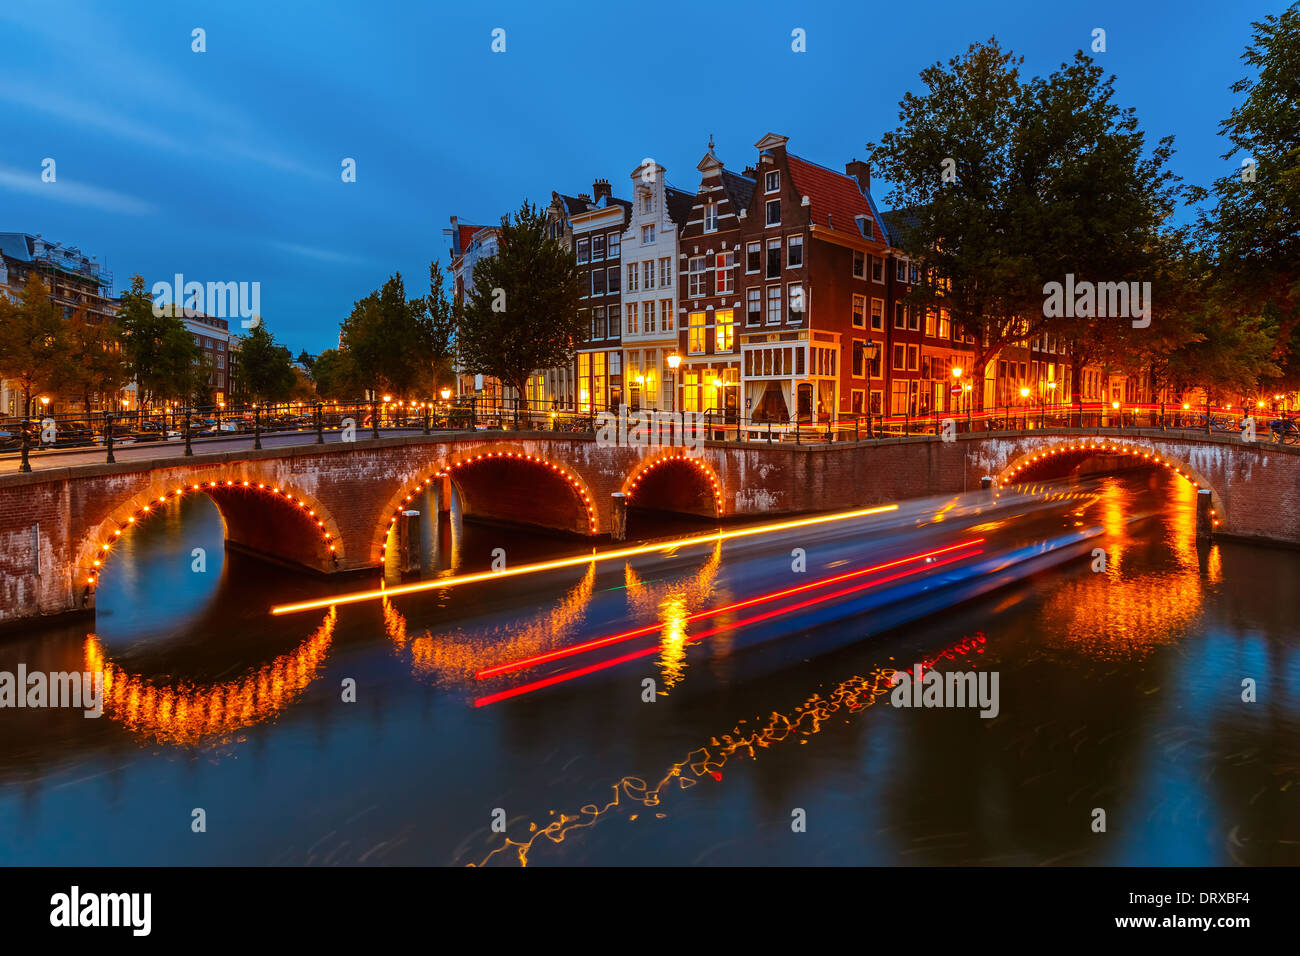 Canals in Amsterdam - Stock Image